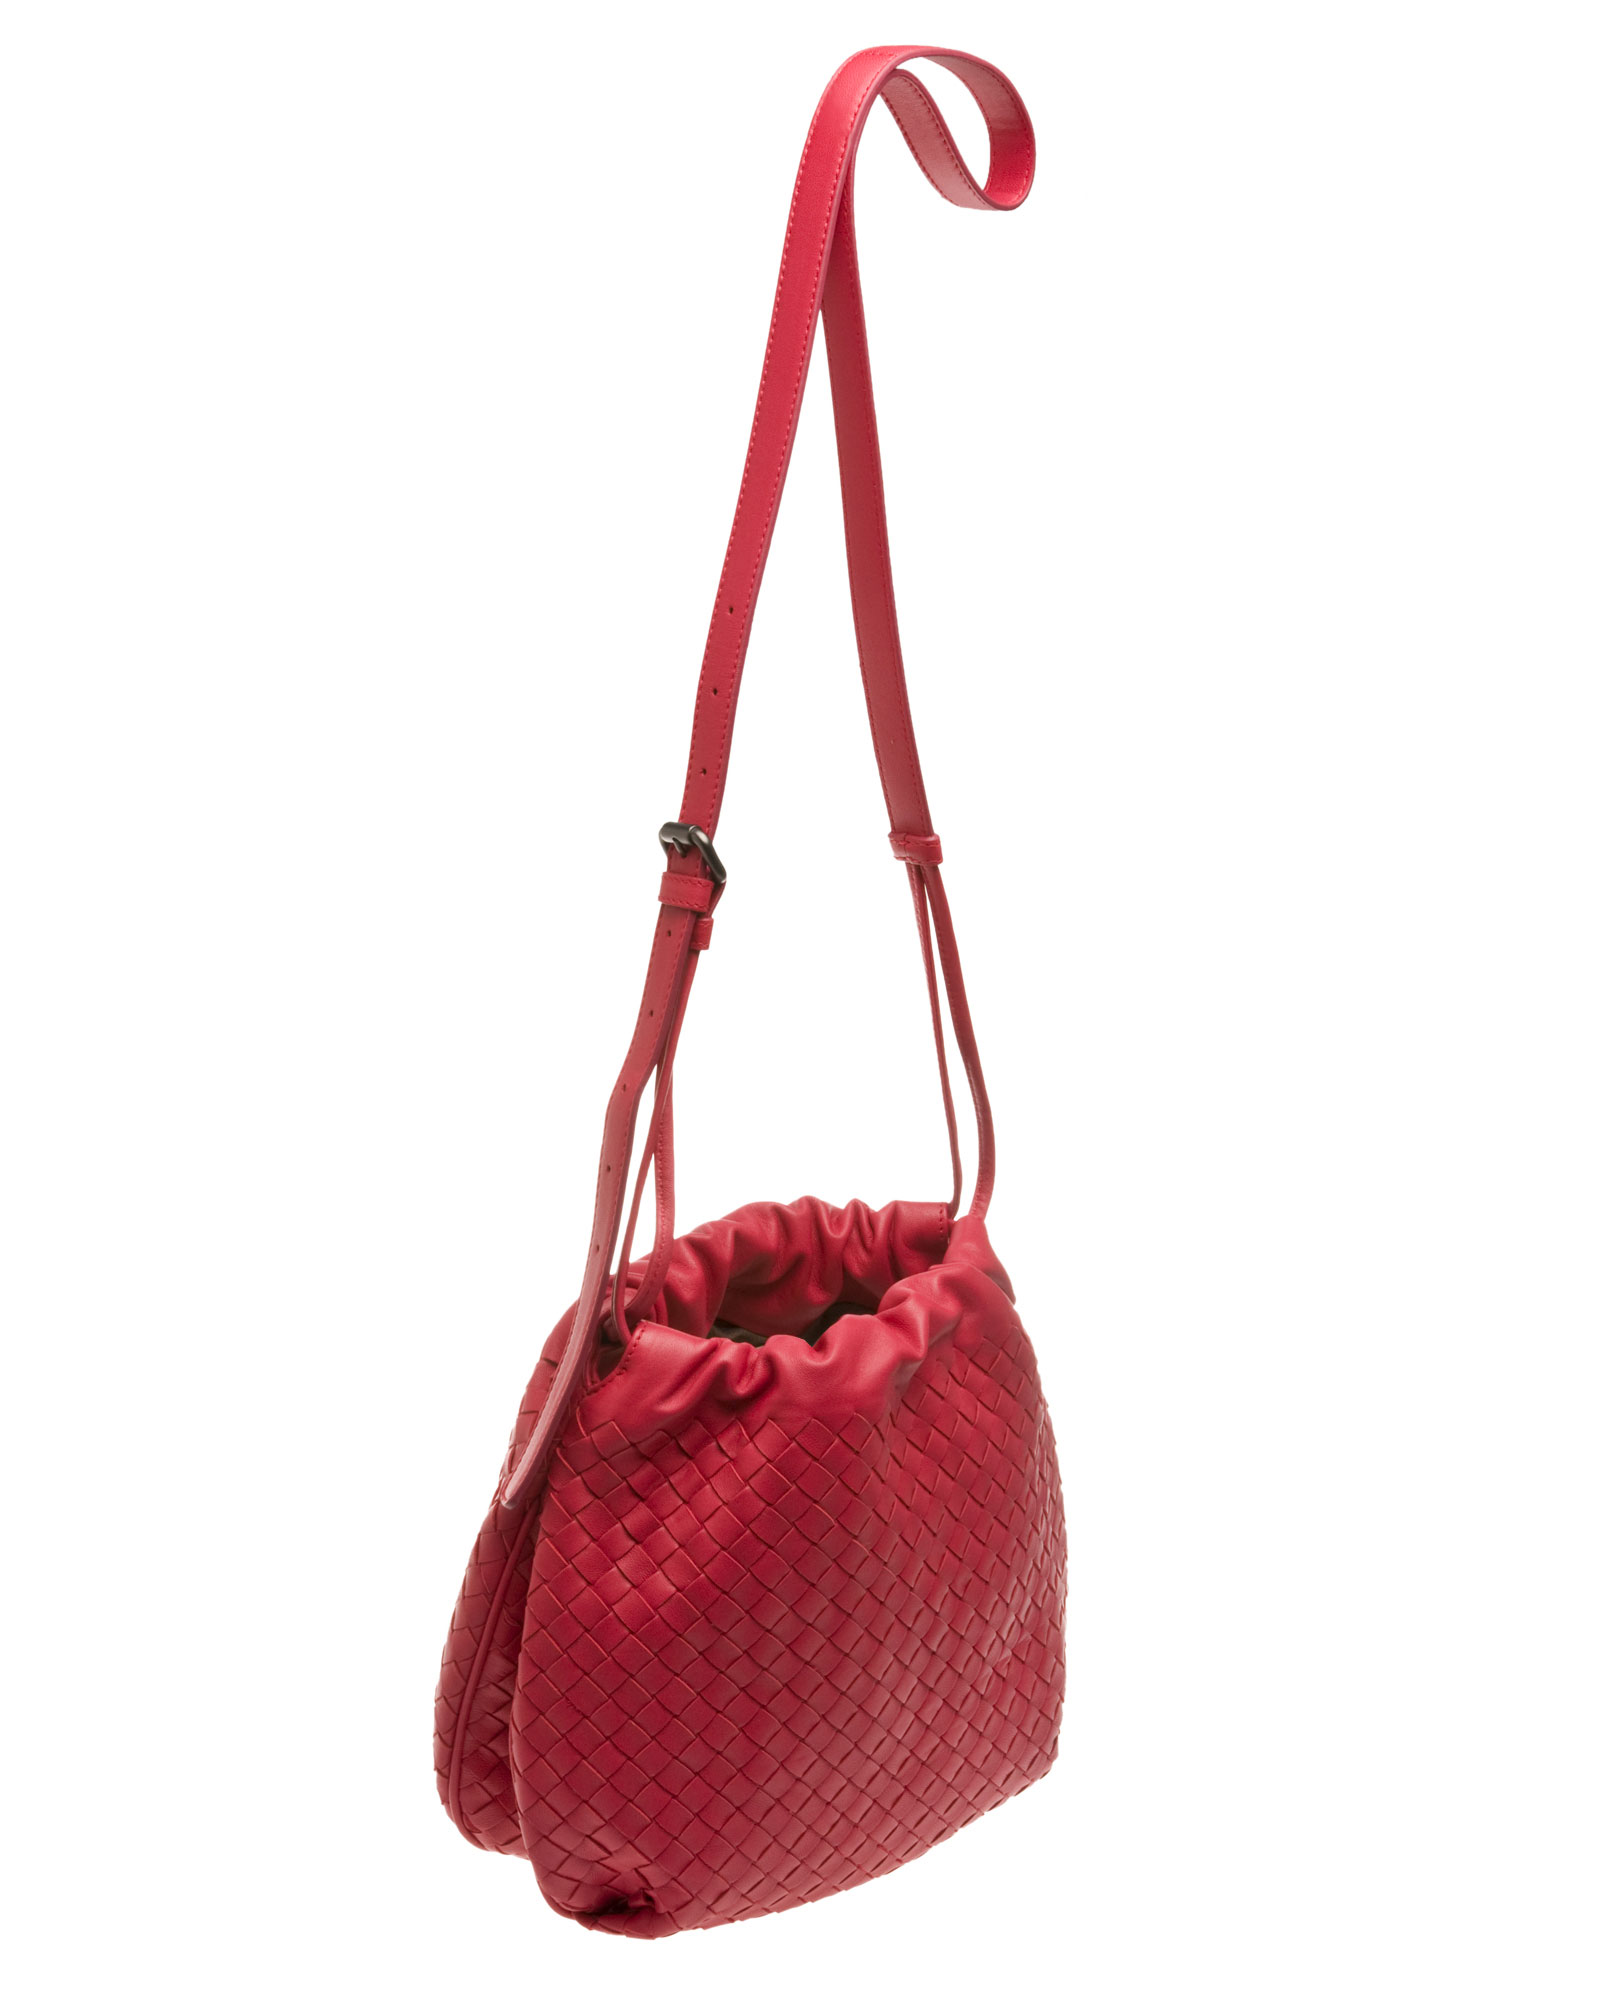 9f0116f159 Bottega Veneta Drawstring Shoulder Bag in Red - Lyst